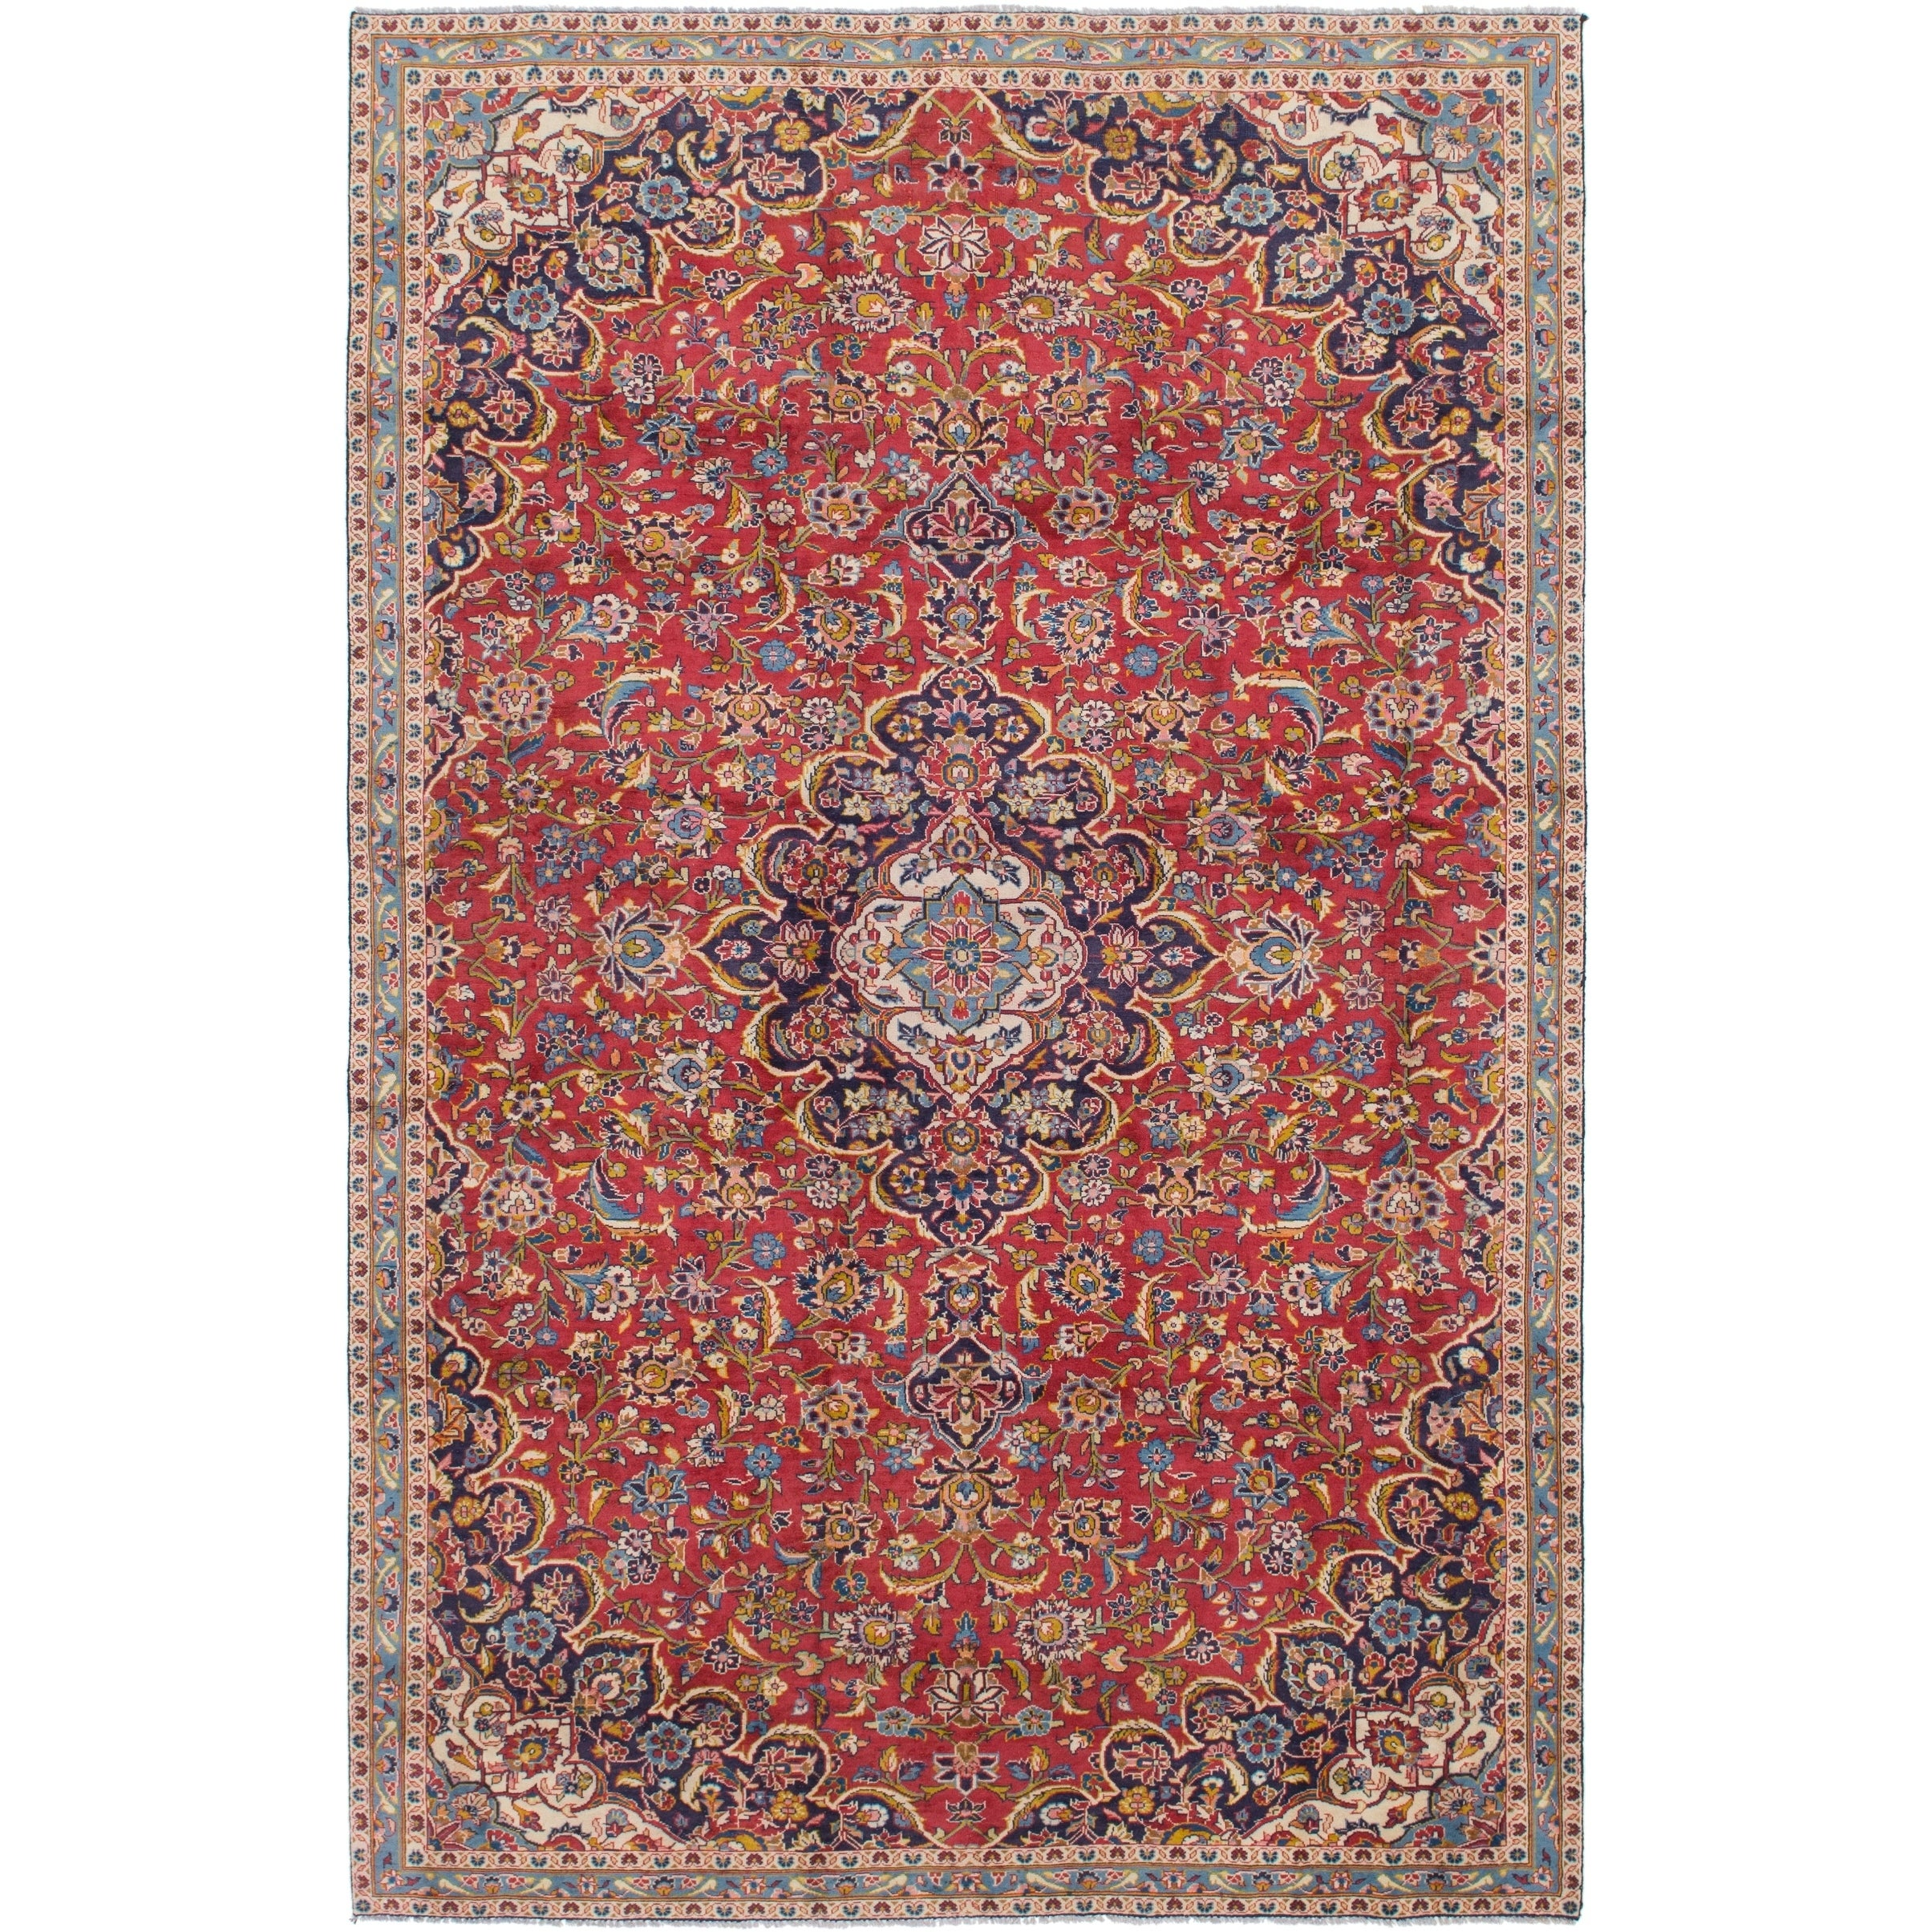 Hand Knotted Kashan Semi Antique Wool Area Rug - 6 10 x 10 10 (Red - 6 10 x 10 10)